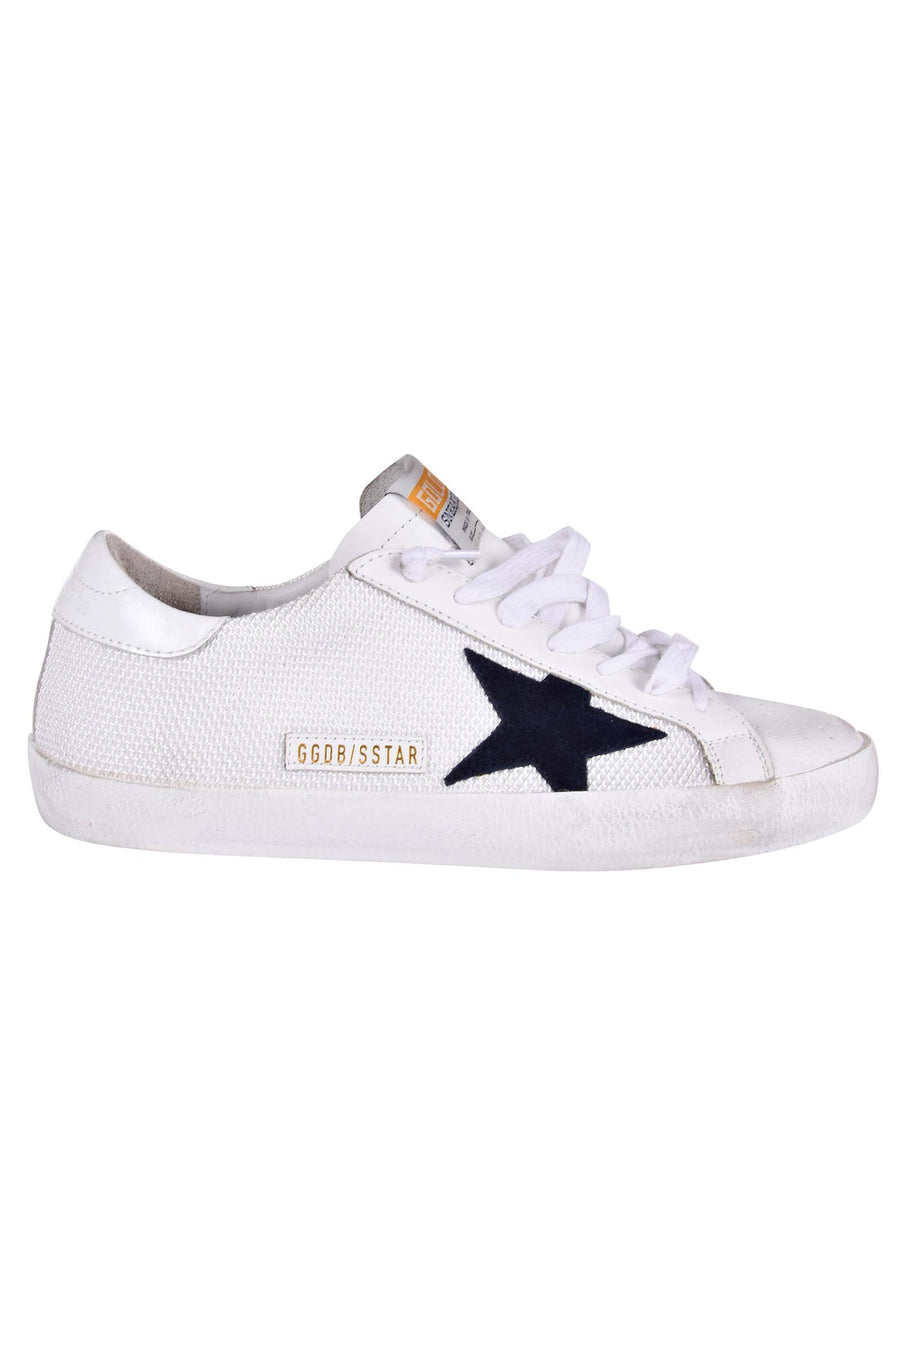 Superstar - White Cord Gum Sneakers - Pavilion